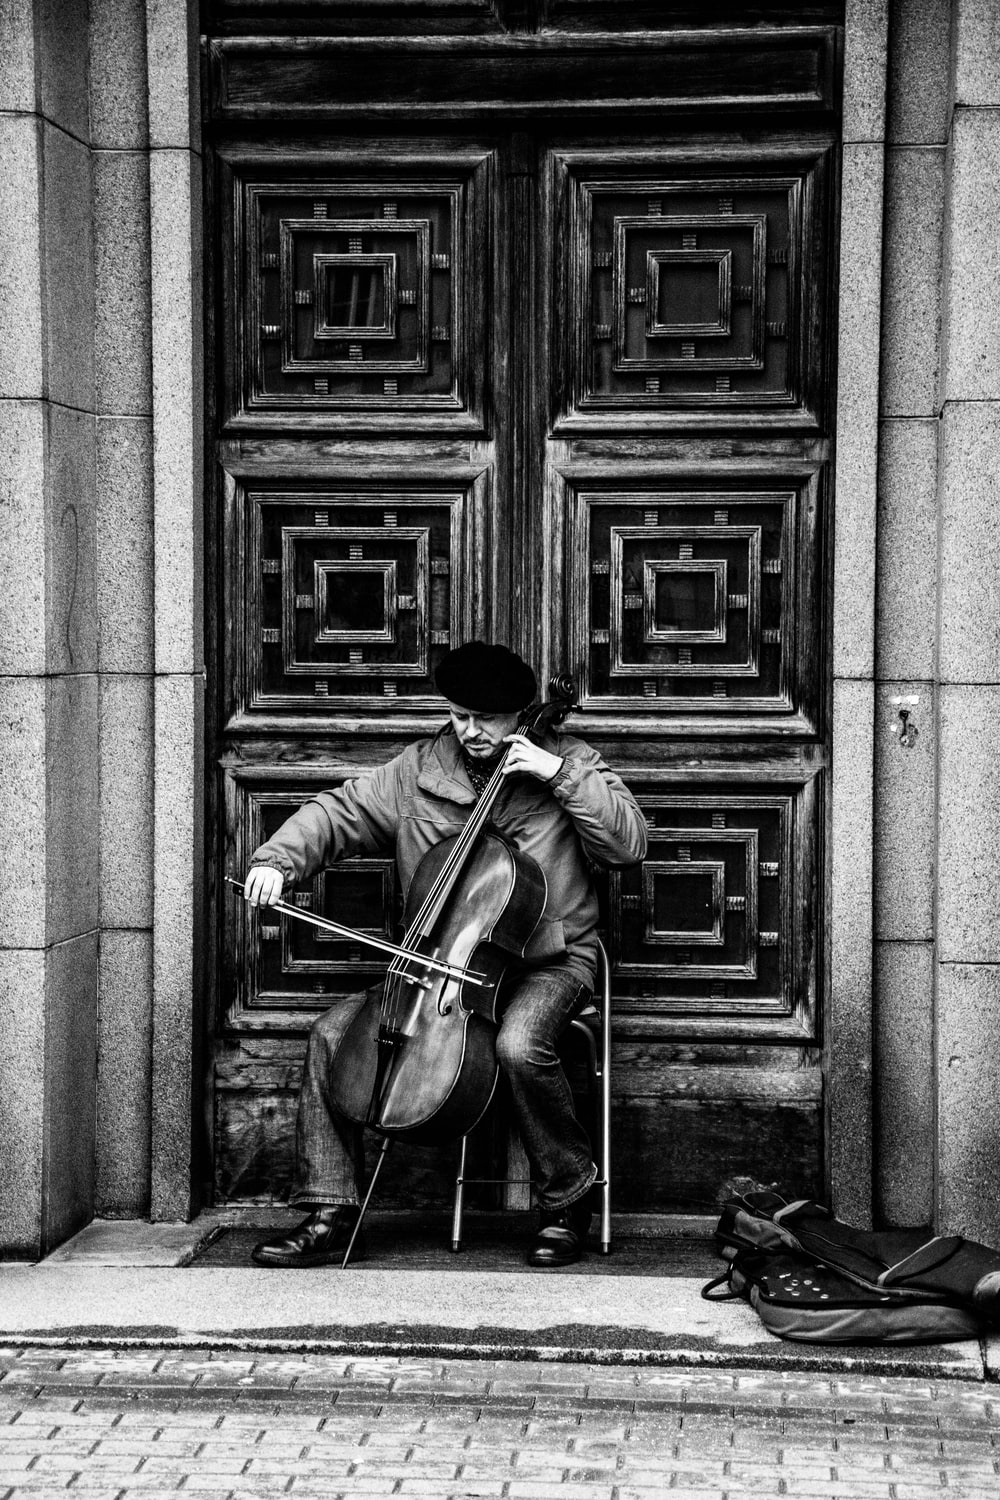 illustration of person playing cello